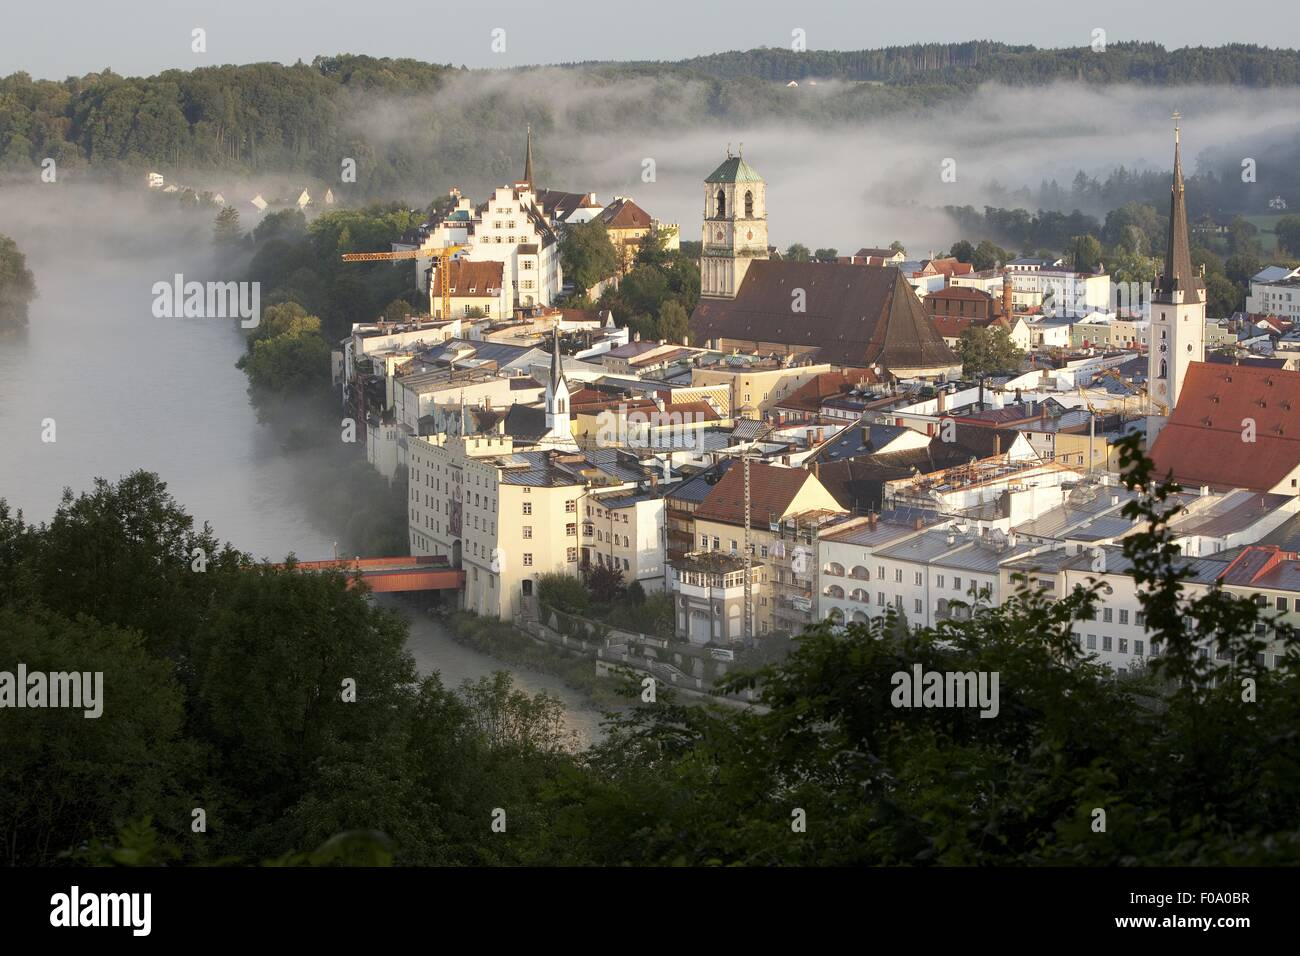 Wasserburg Am Inn Germania wasserburg germany photos & wasserburg germany images - alamy